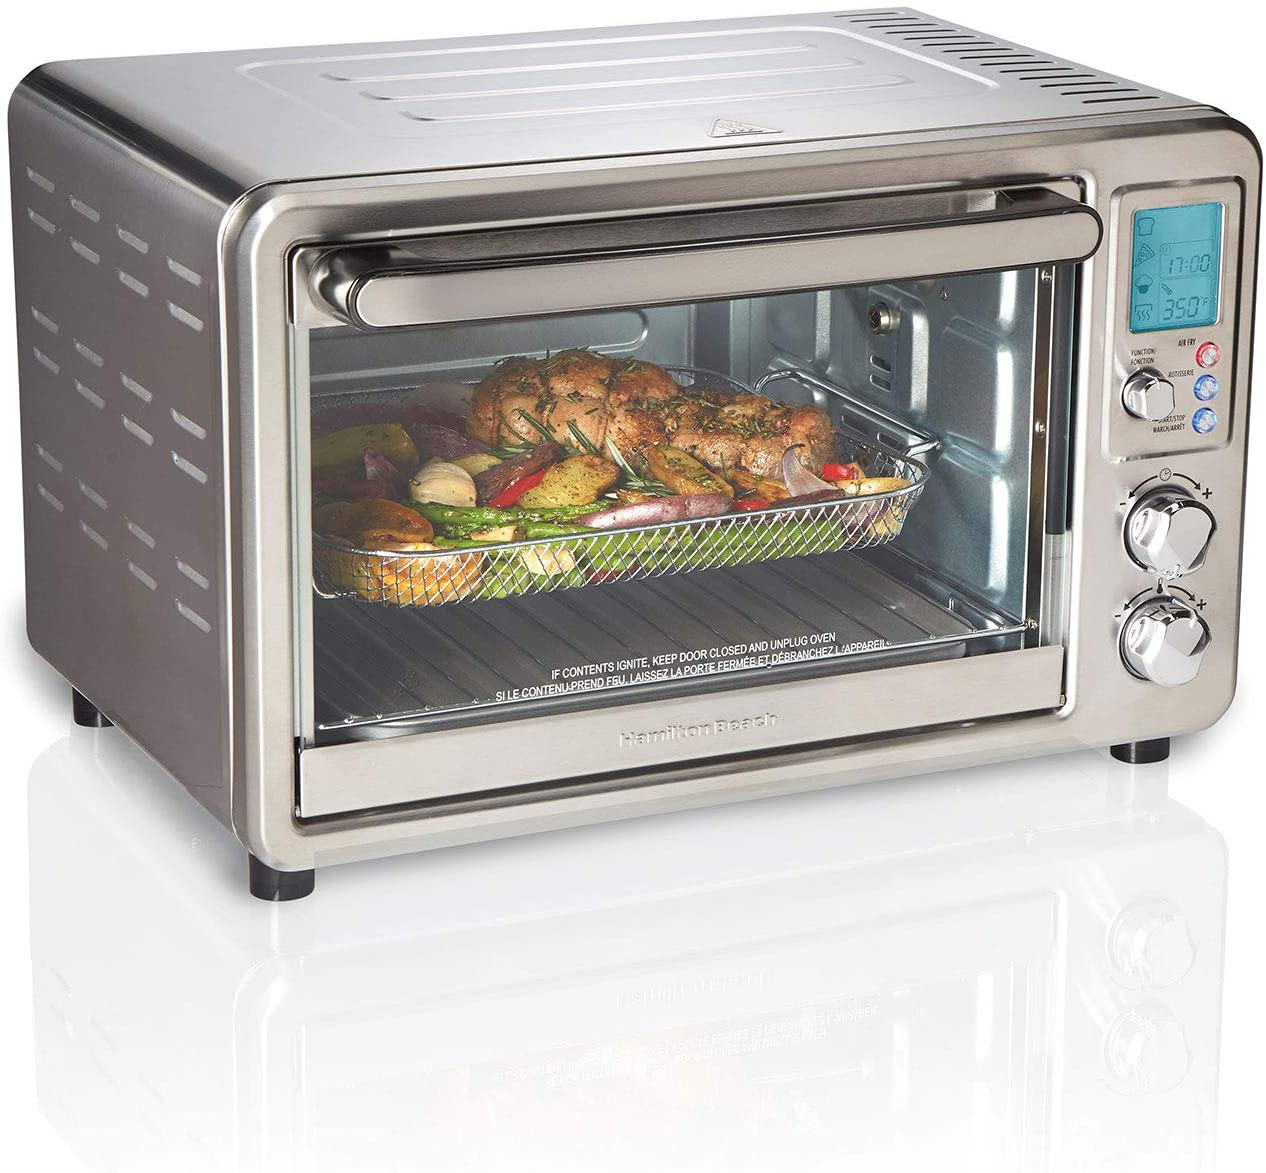 Hamilton Beach Sure-Crisp Digital Air Fryer Toaster Oven with Rotisserie | 31193